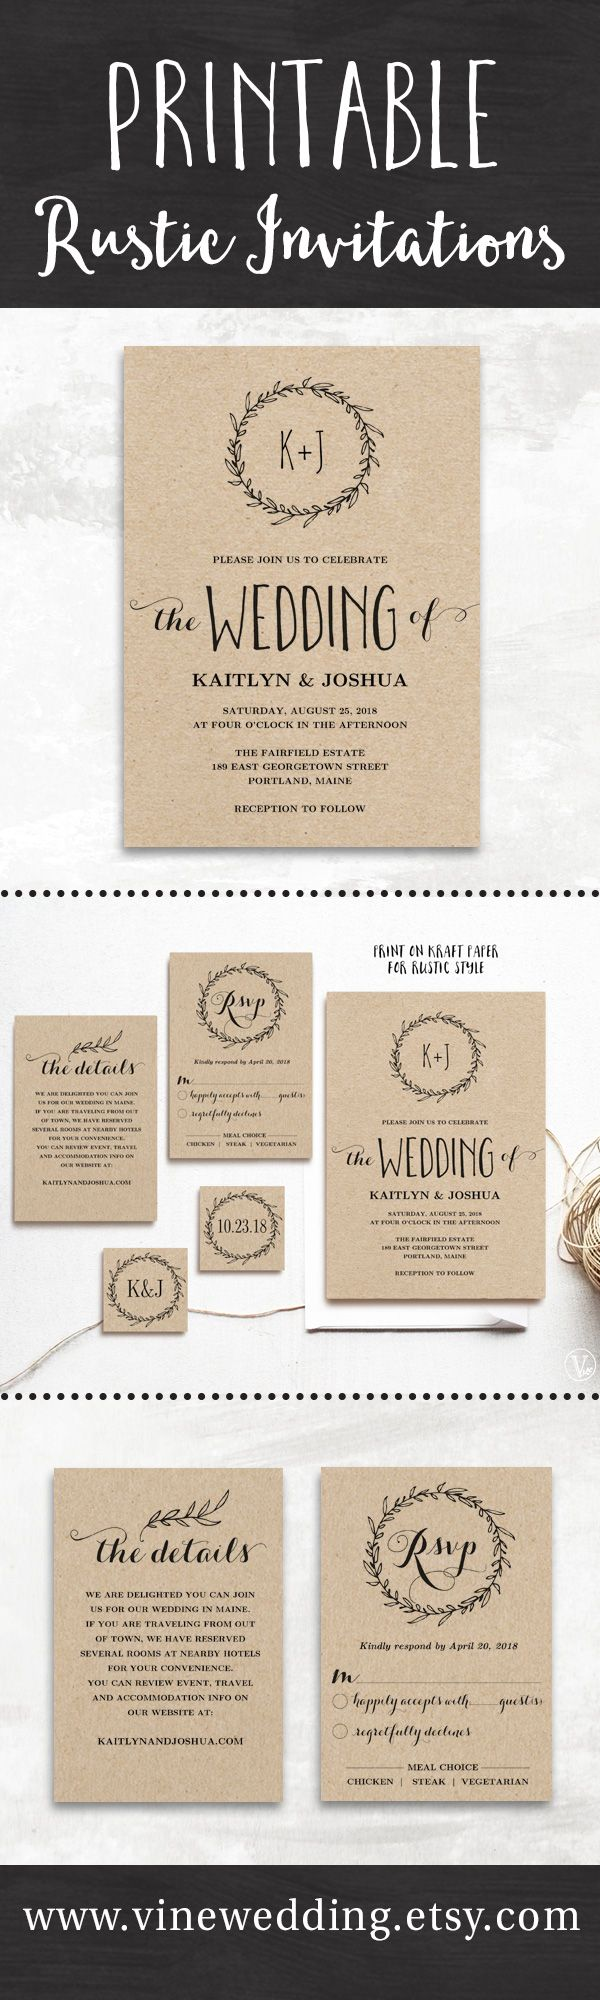 Beautiful rustic wedding invitations Editable instant download